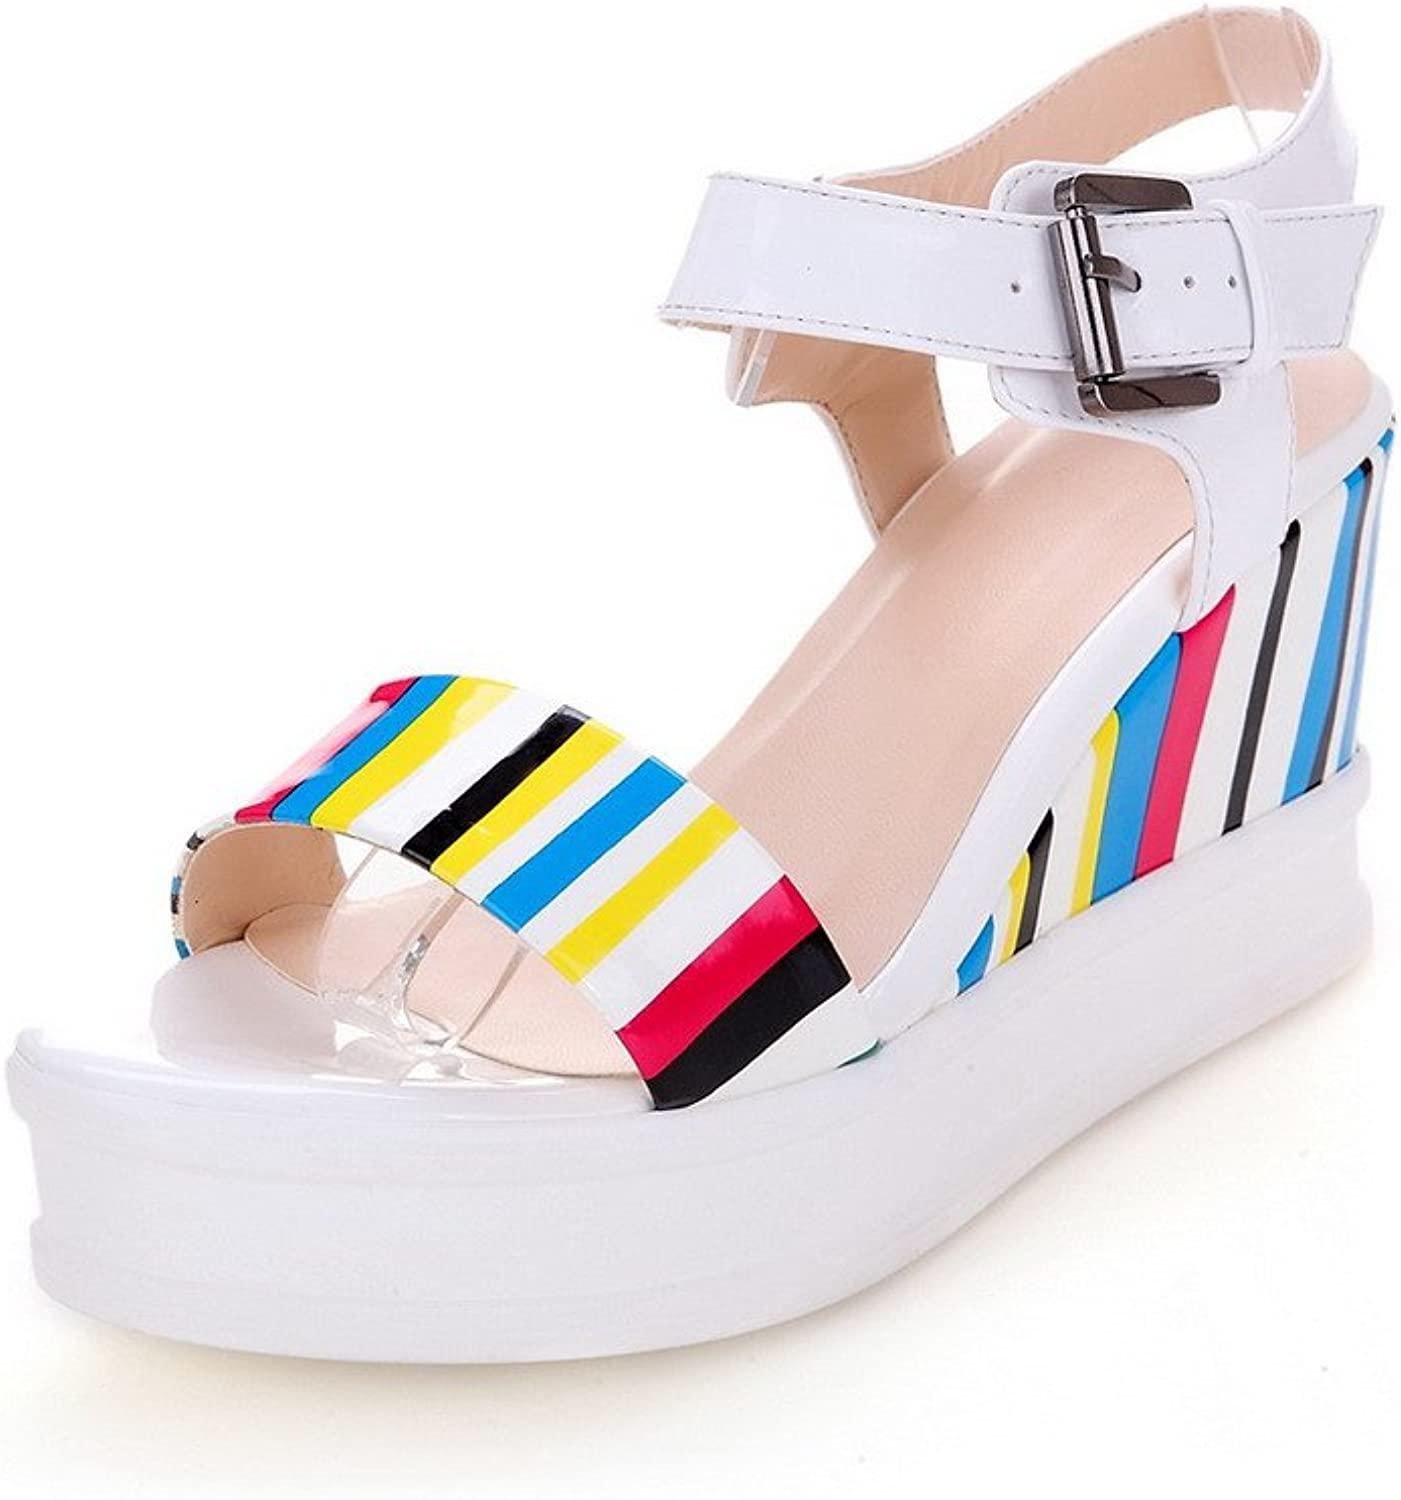 AmoonyFashion Women's Soft Material Open-Toe High-Heels Buckle Assorted color Sandals